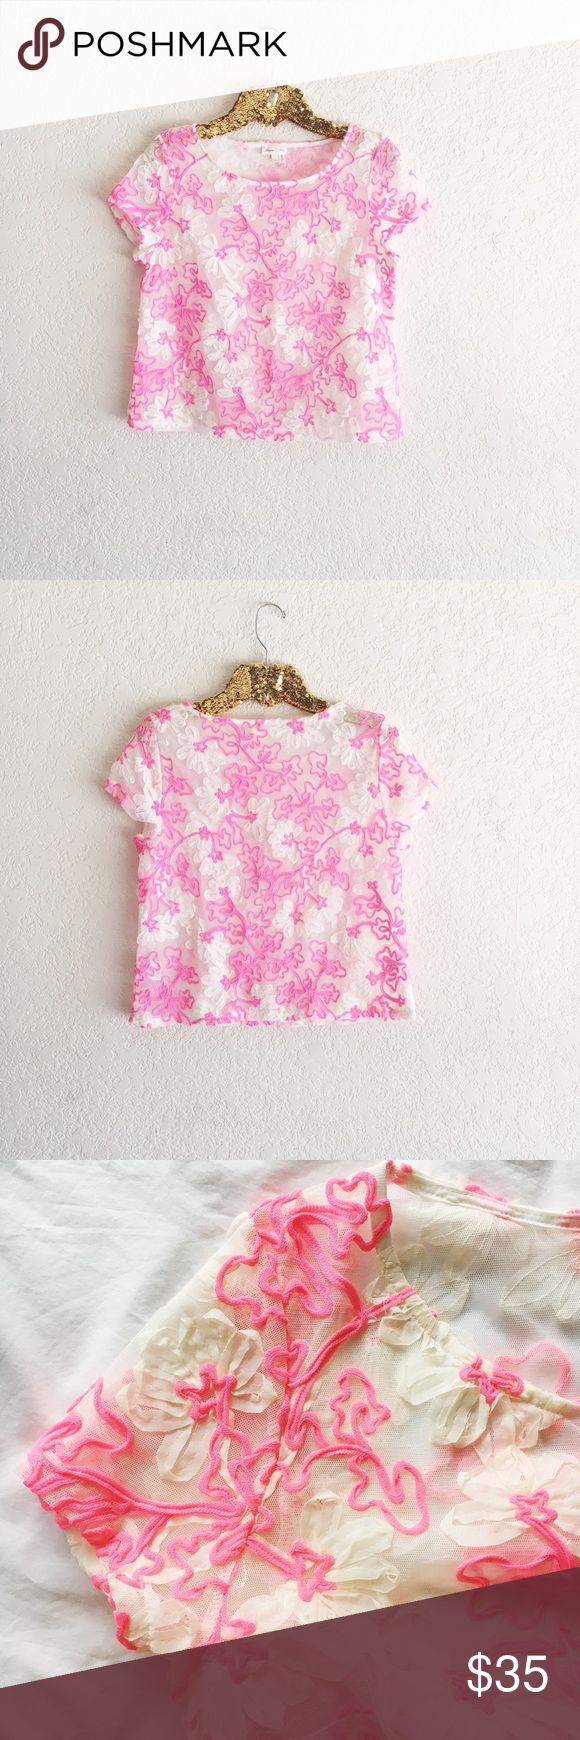 """Anthropologie Meadow Rue Cherry Blossom Top Embroidered mesh neon pink short sleeve top. In excellent pre-owned condition. Size small.  Approximate Measurements (laying flat):  • length: 21""""  • underarm to underarm: 18.5"""" Anthropologie Tops Tees - Short Sleeve"""